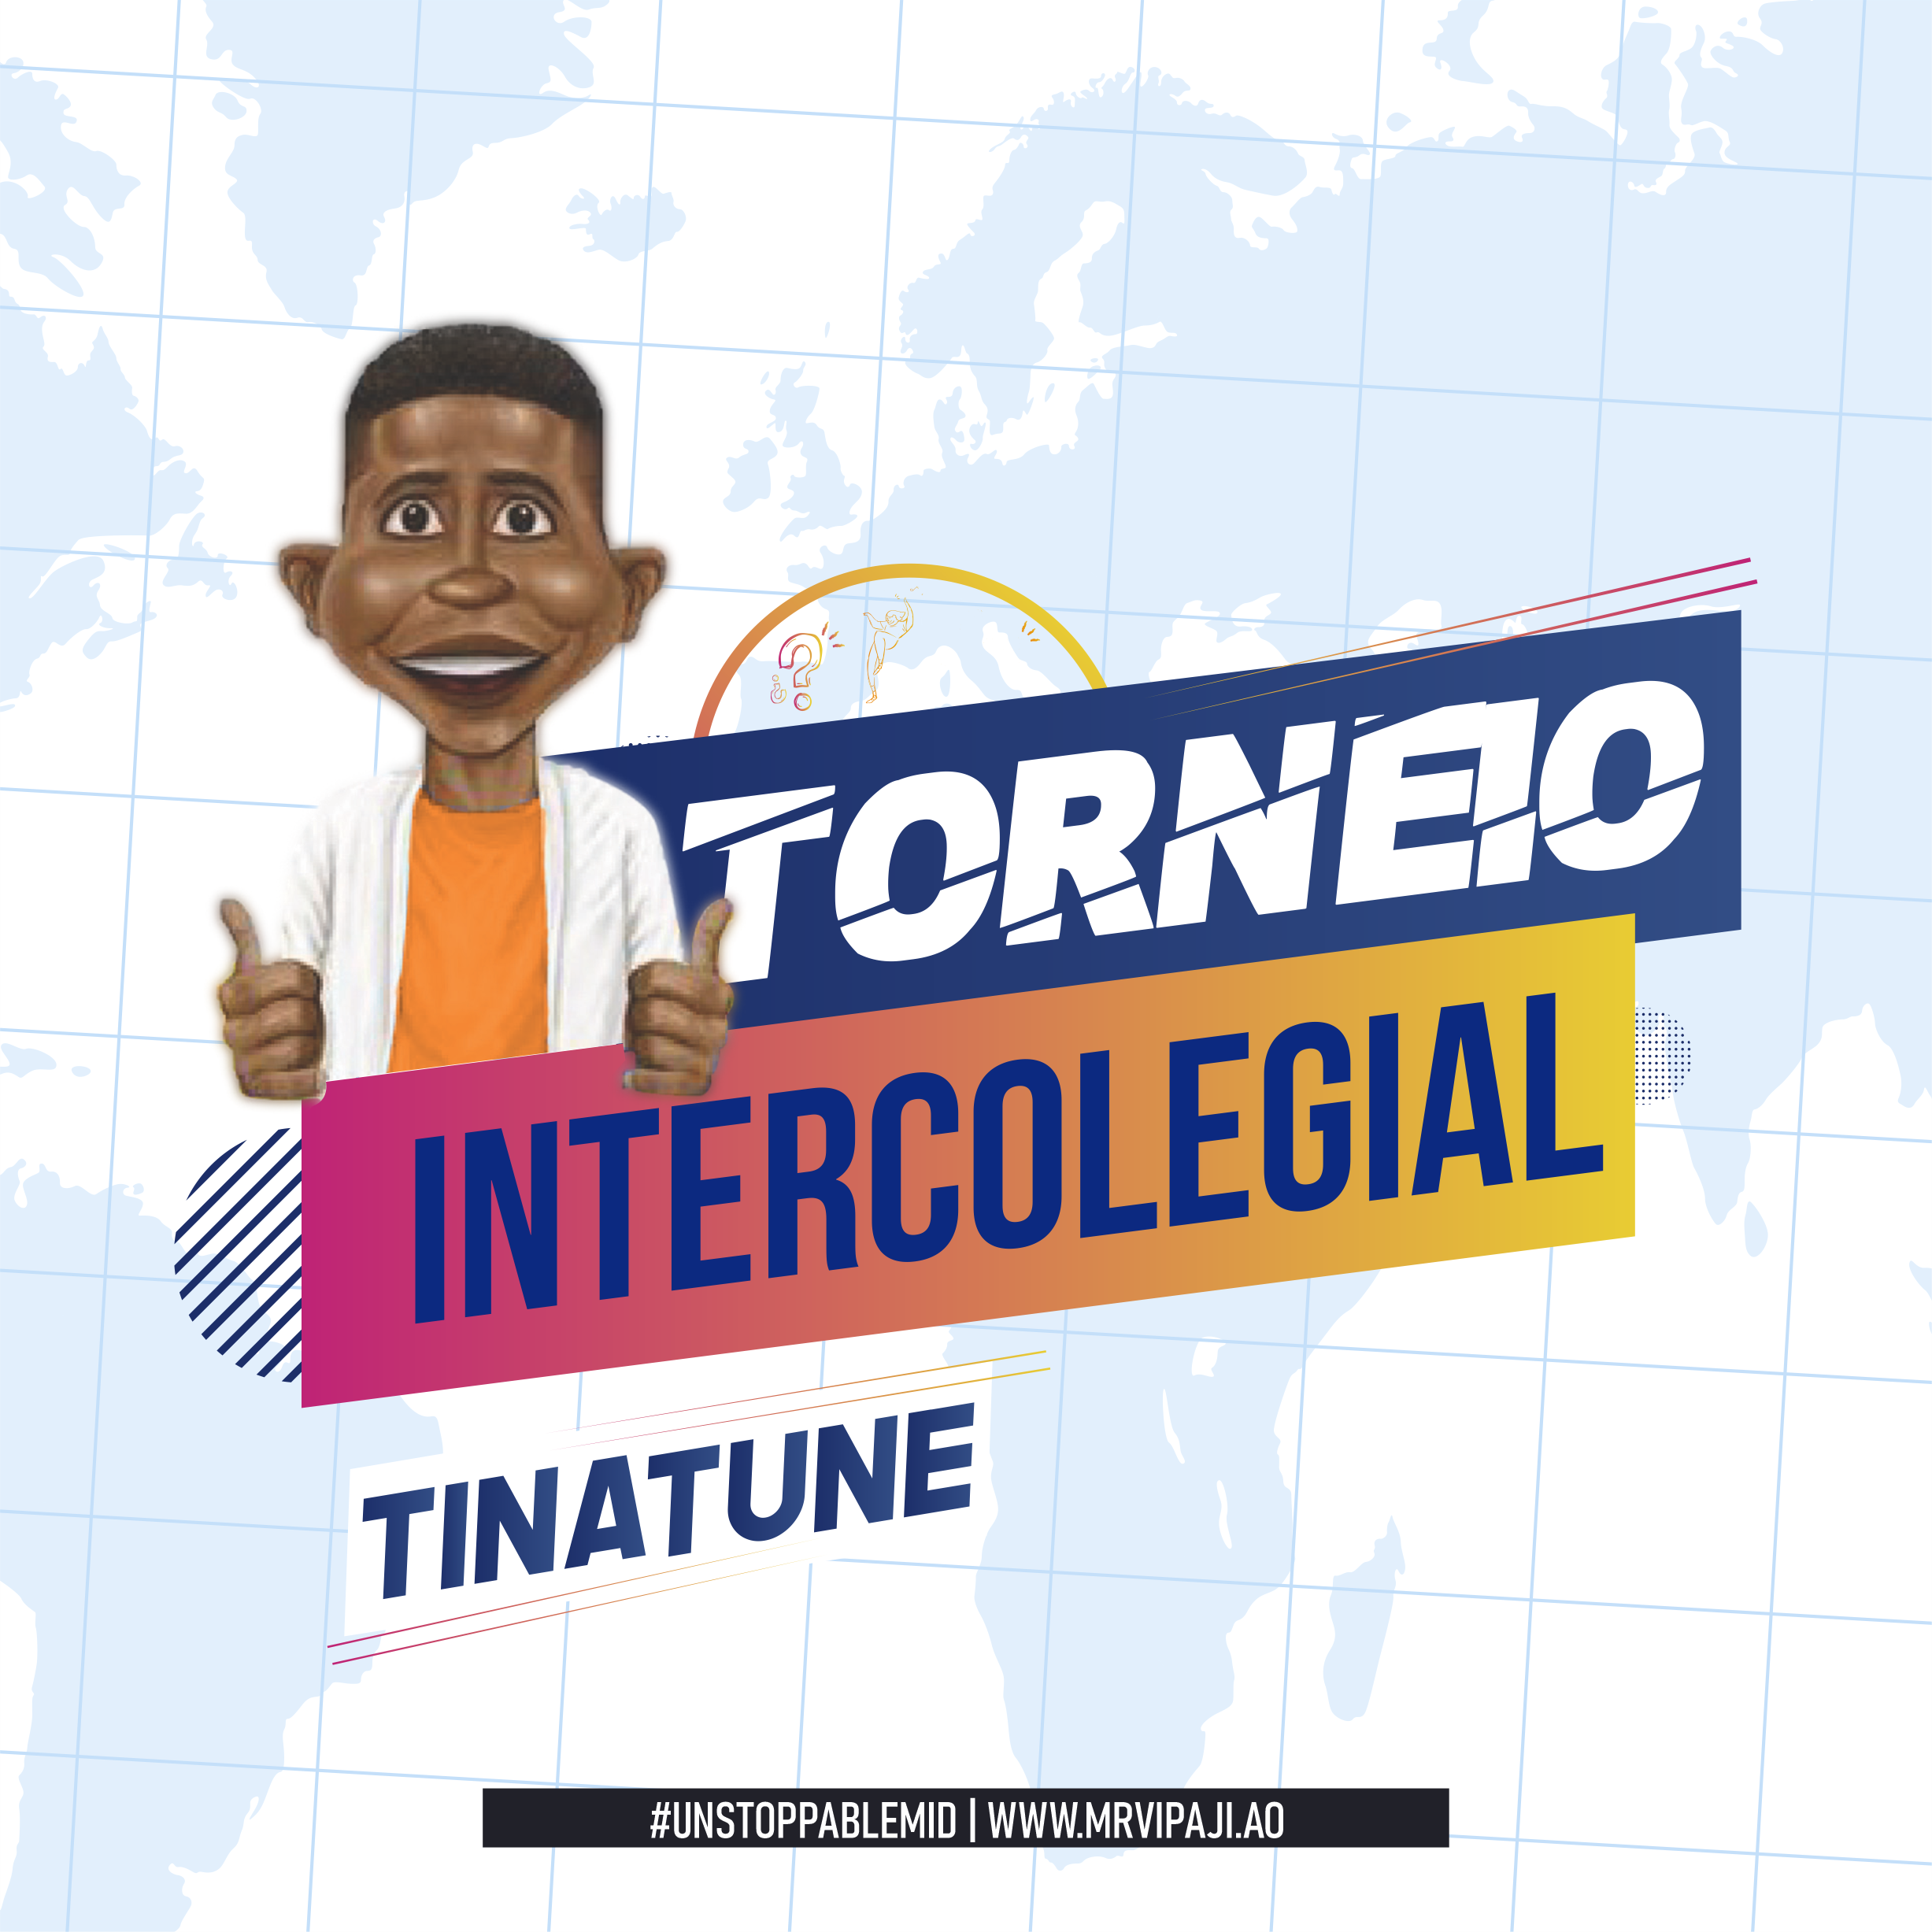 Intercolegial Tina Tune